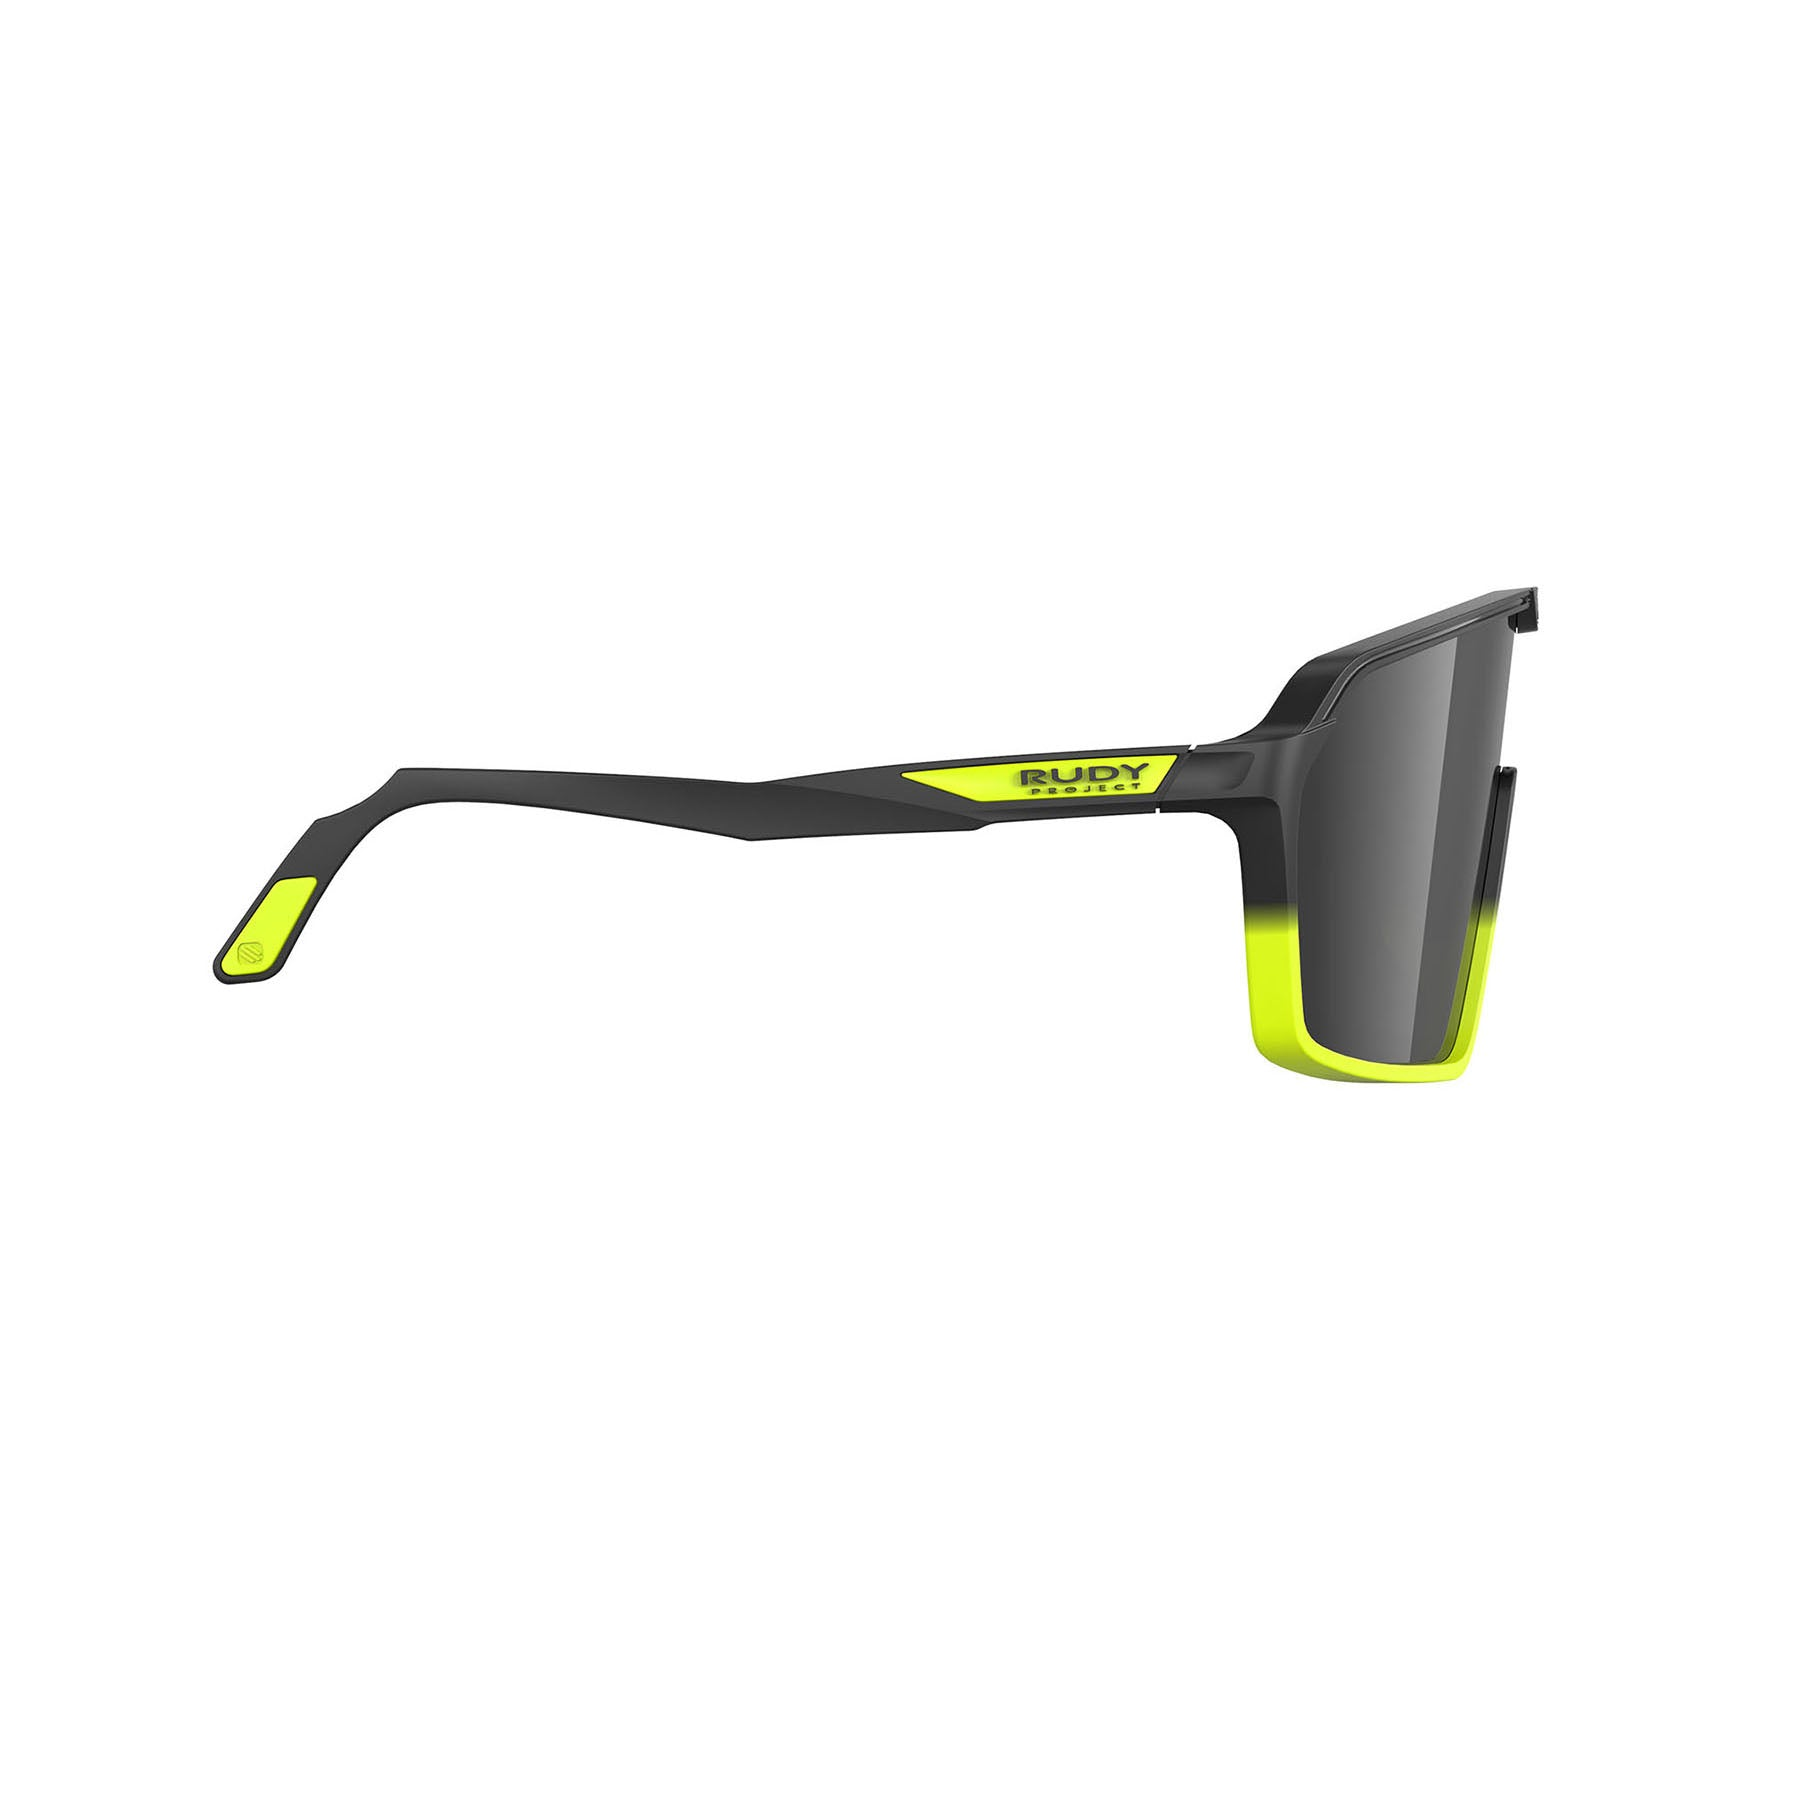 Rudy Project - Spinshield - frame color: Matte Black Yellow Fluo - lens color: Smoke Black - photo angle: Side Variant Hover Image